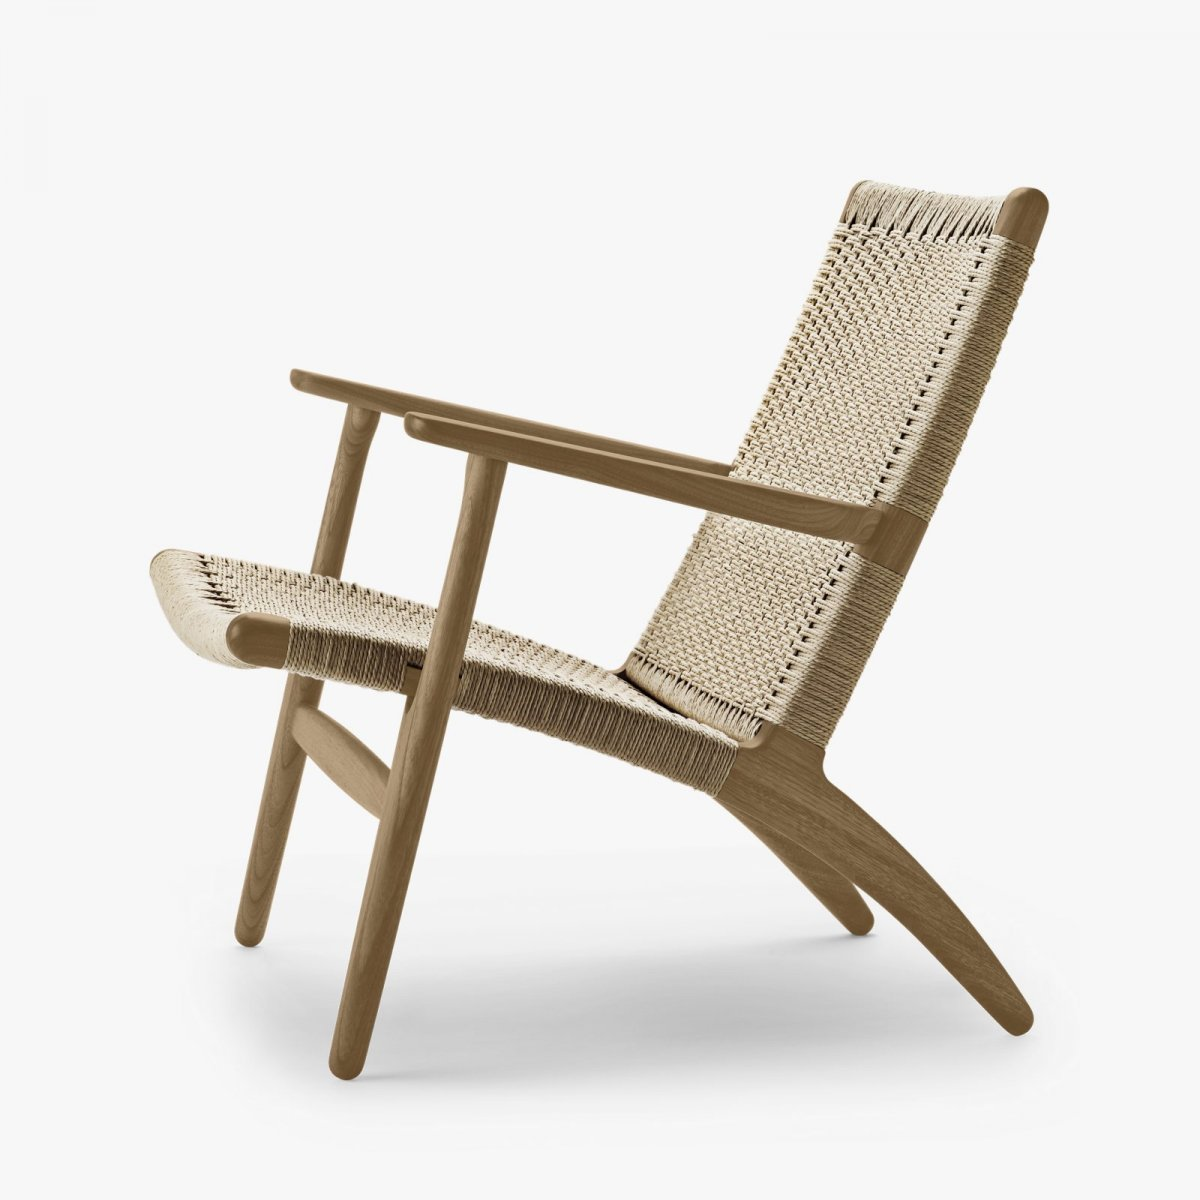 CH25 Lounge Chair, oiled oak with natural cord, side view.